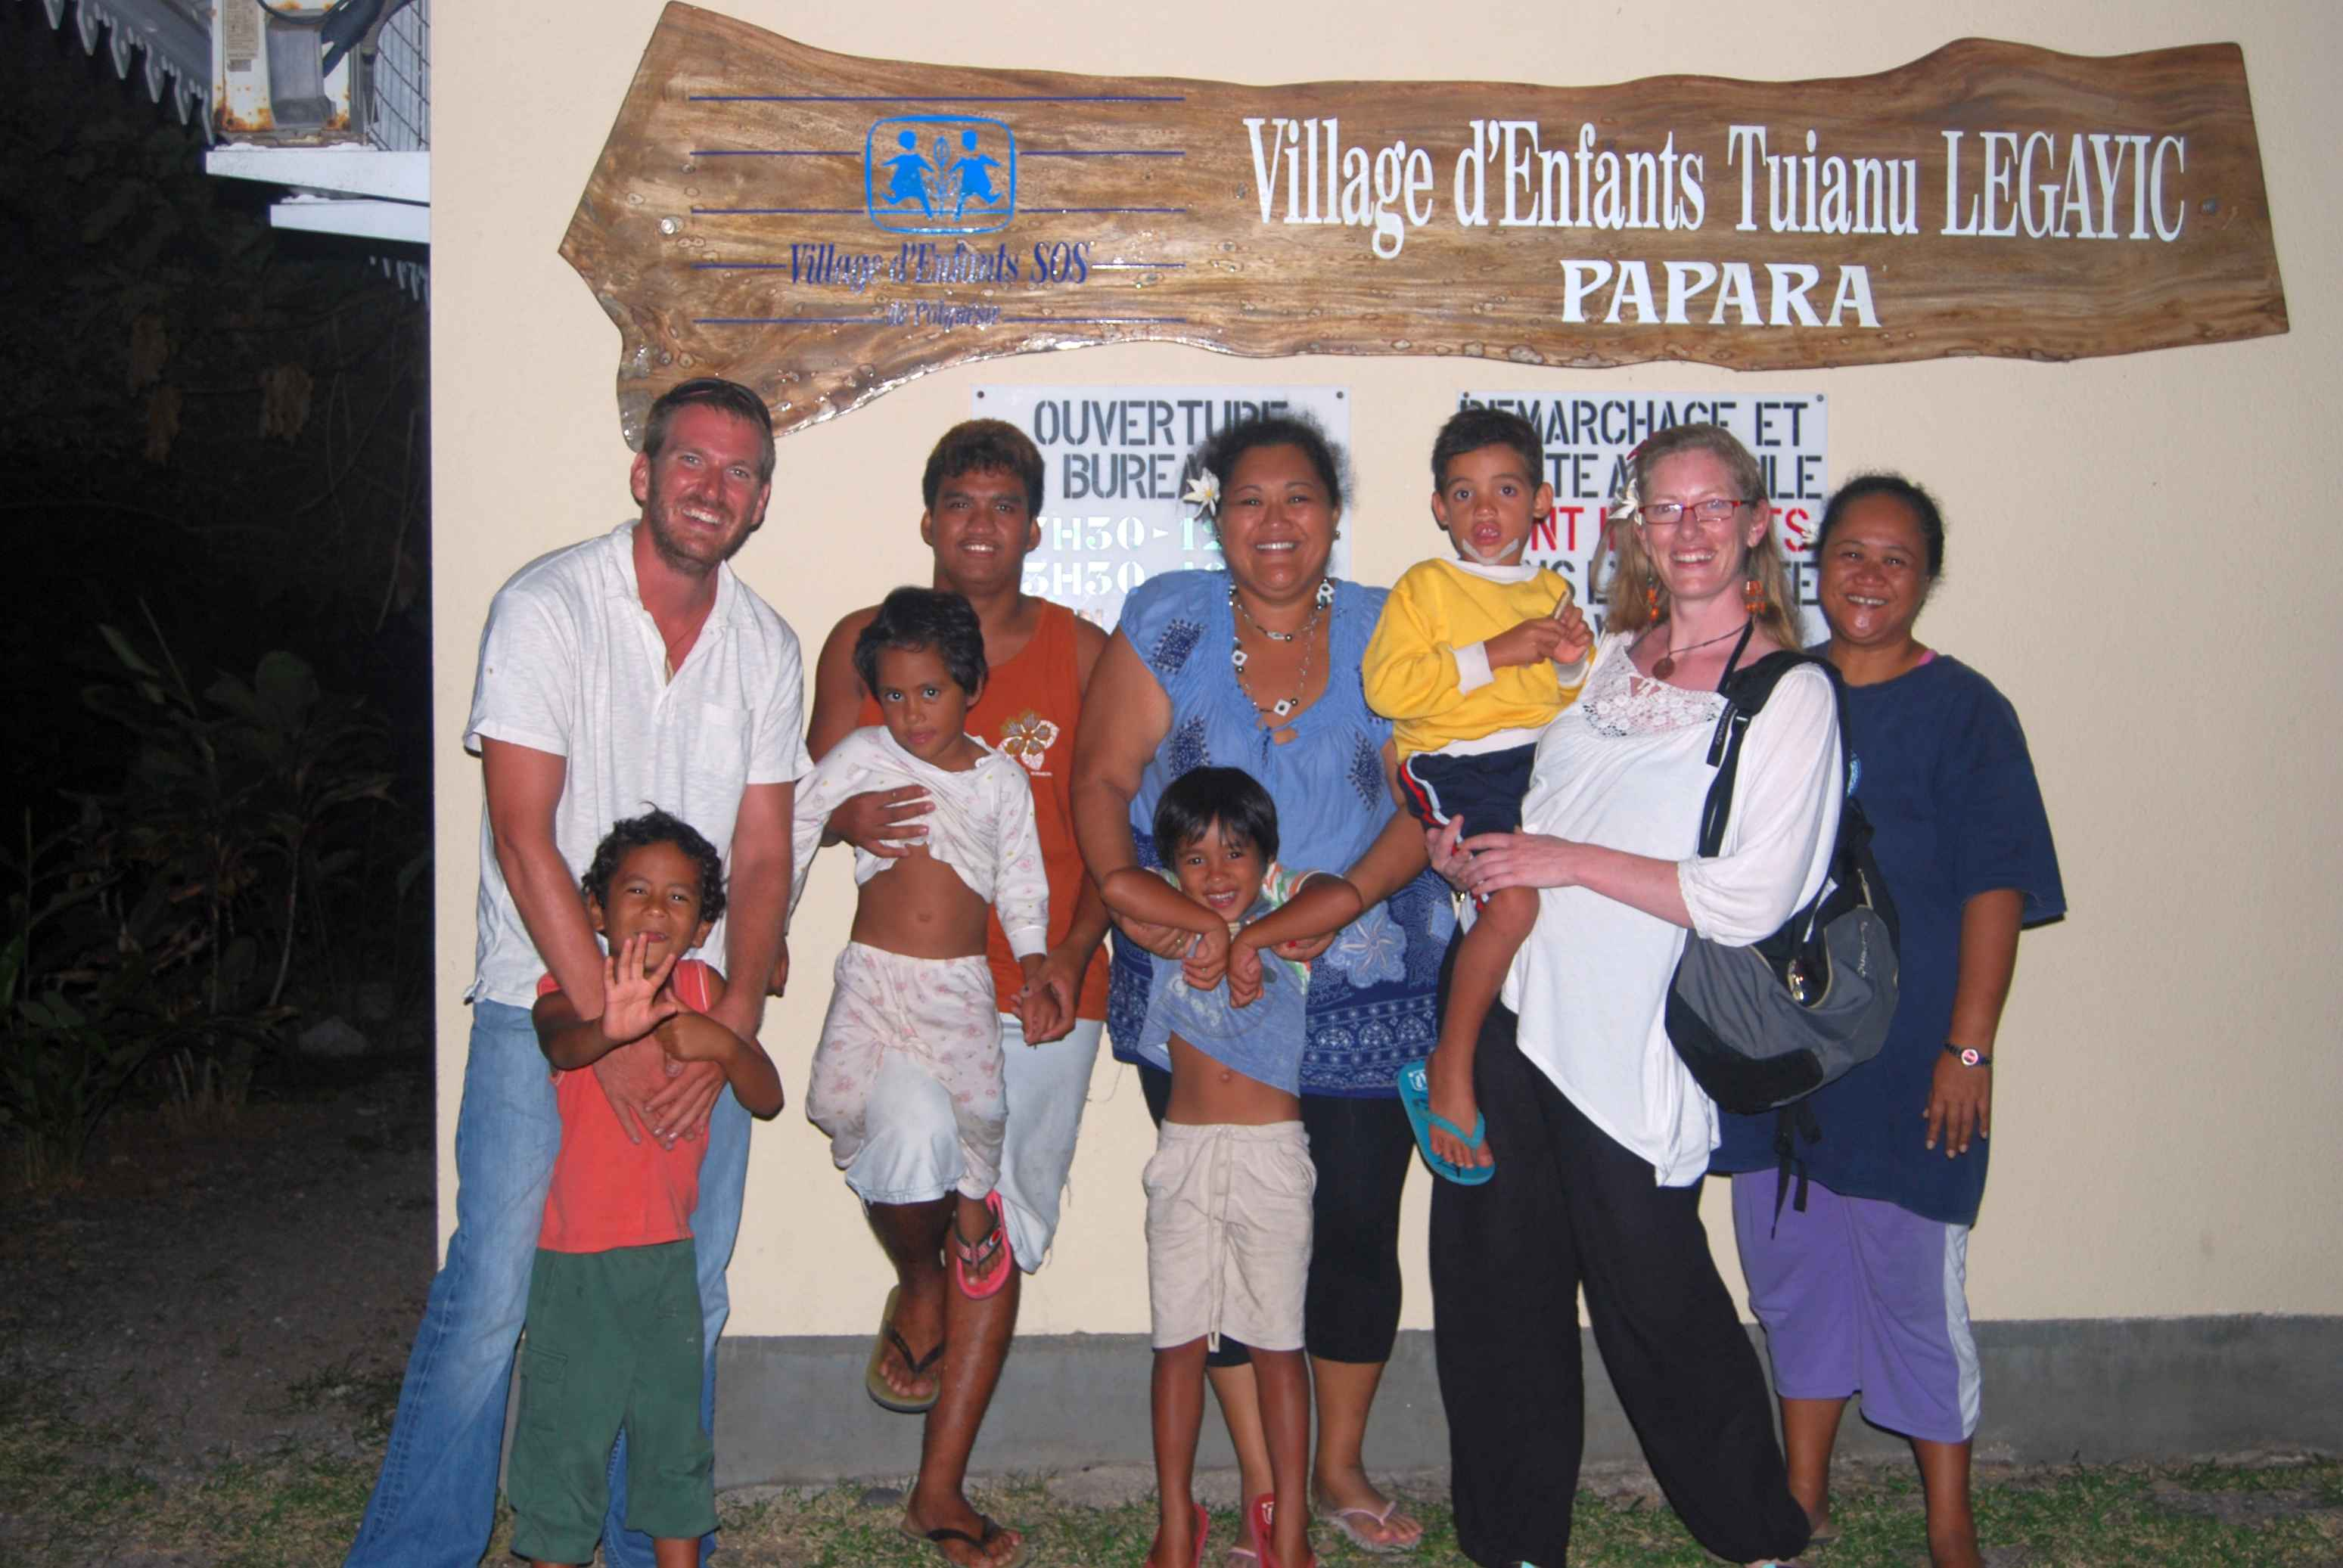 Sailing, Pacifc Passage, Lee Winters, Cruising, Singlehanded Sailing, SOS Children's Villages